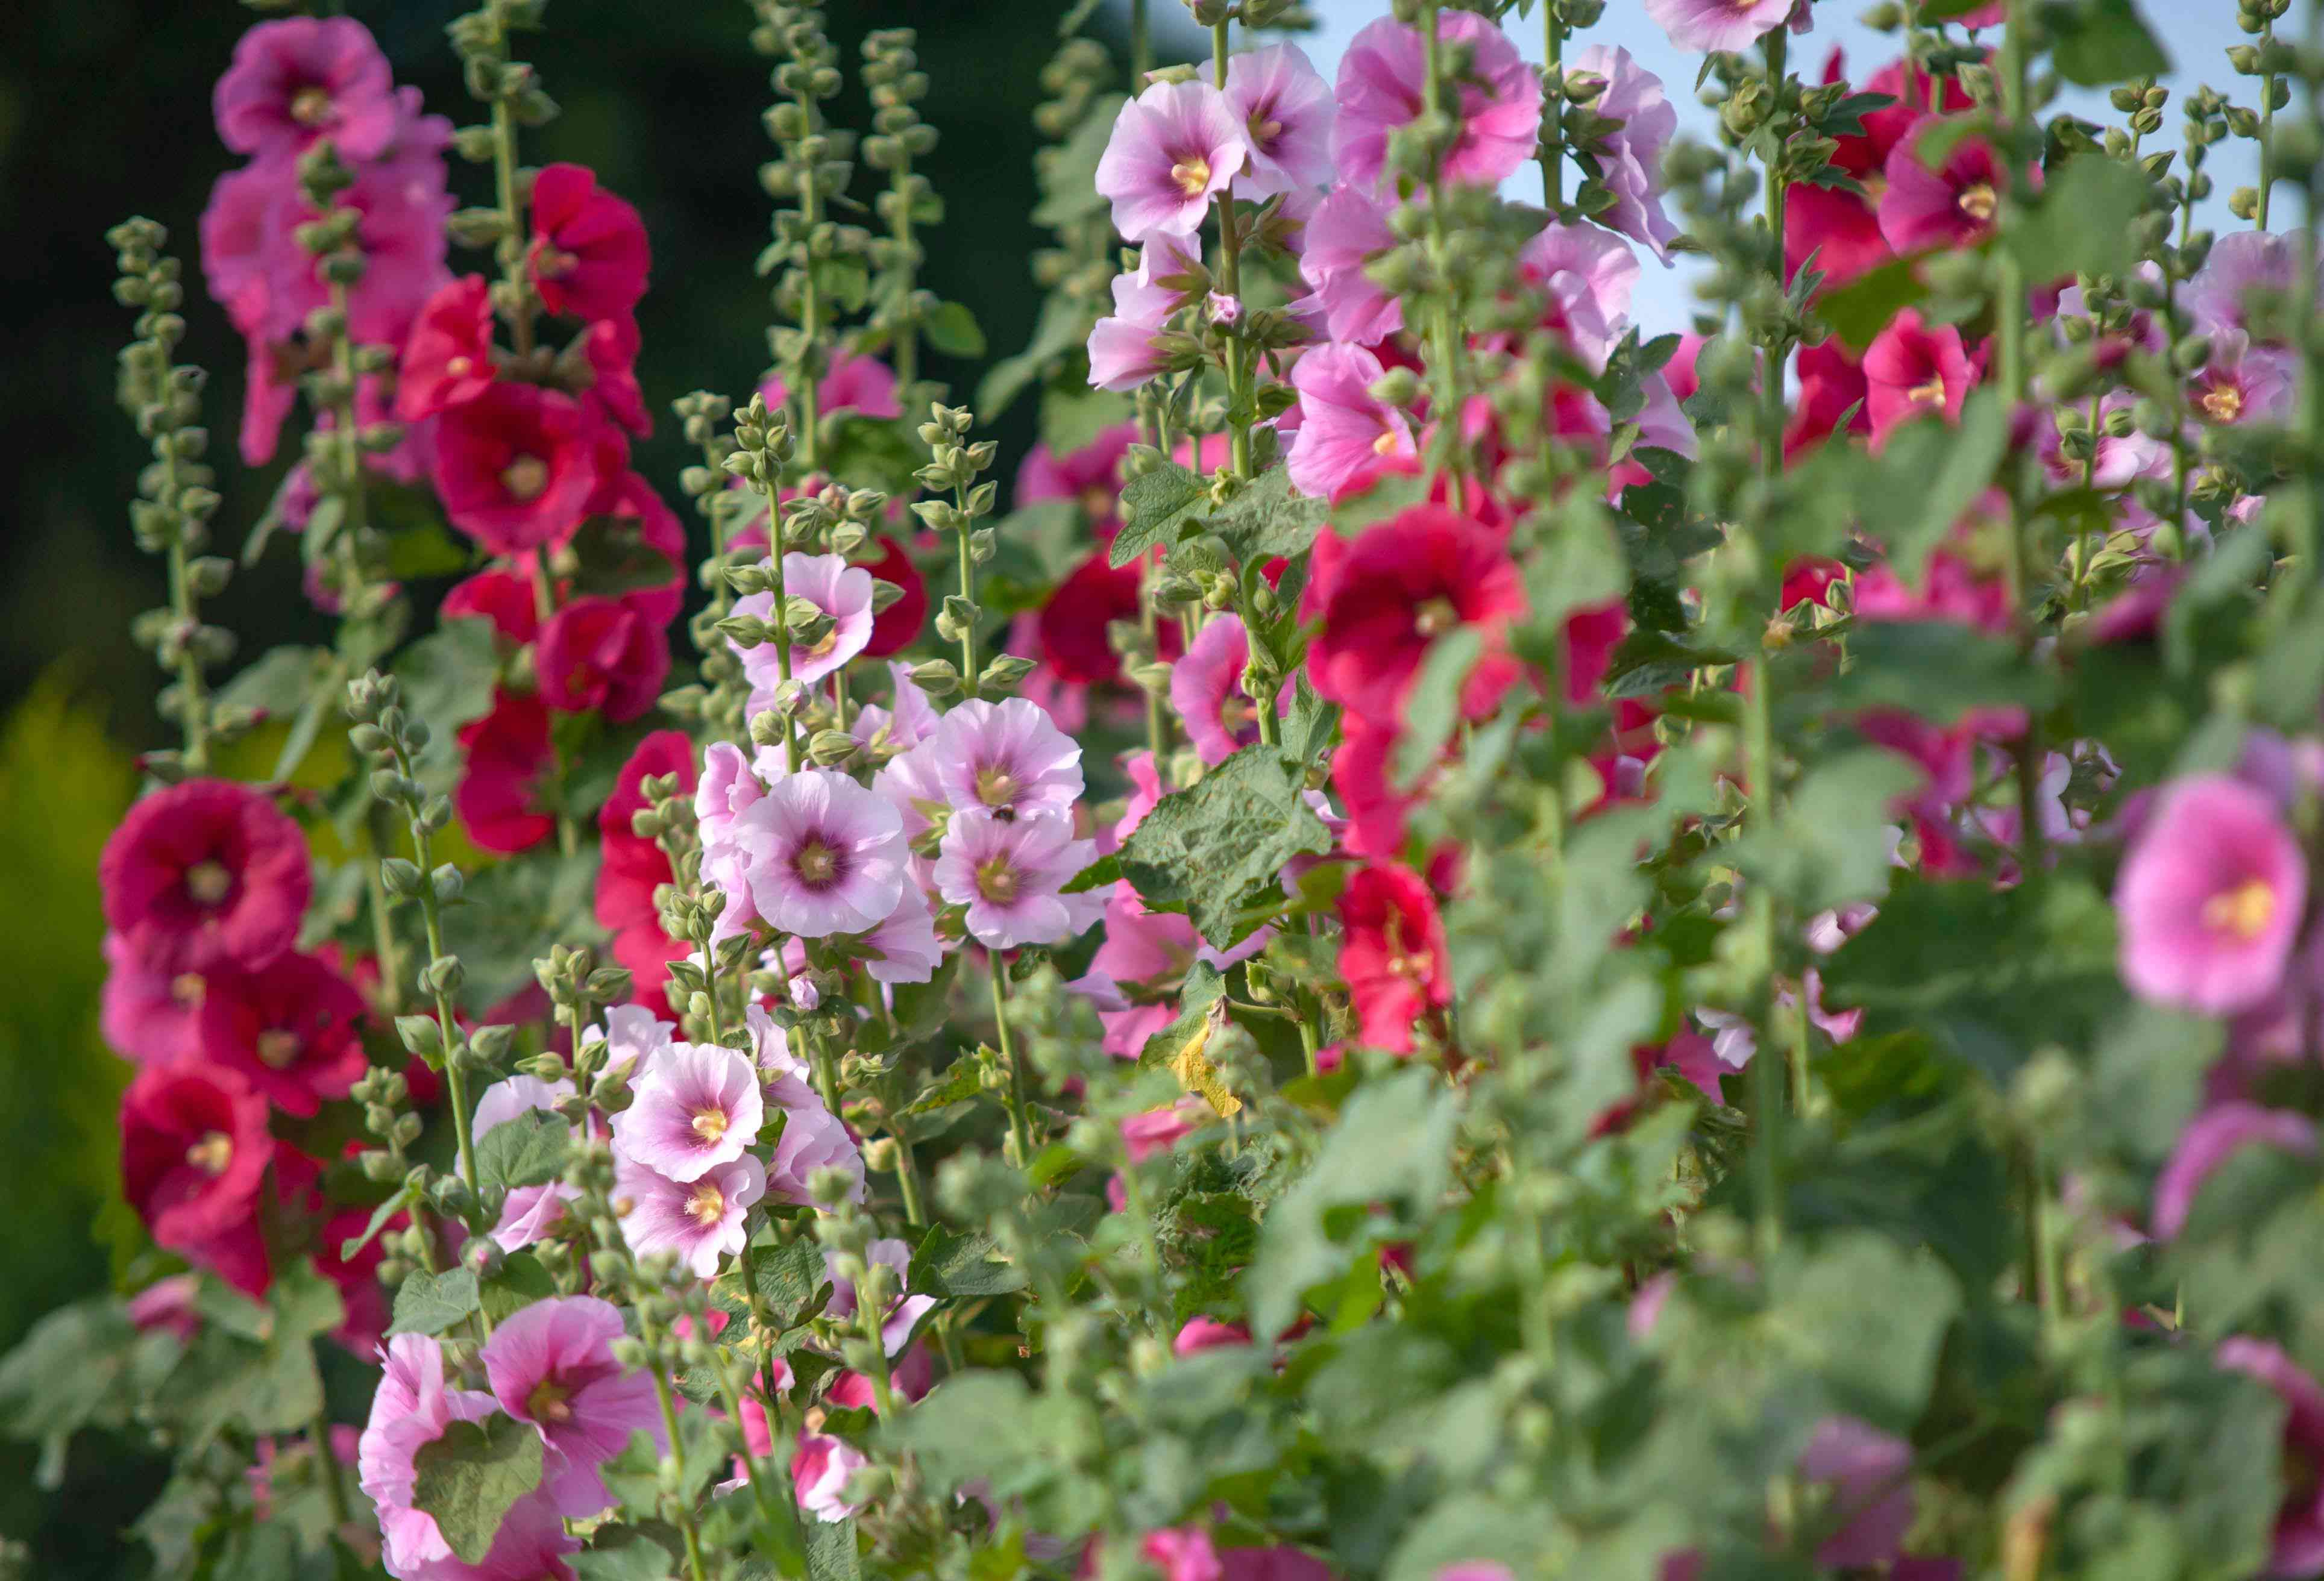 Hollyhock mallow plant with pink, white and red trumpet-shaped flowers and buds on flower spikes